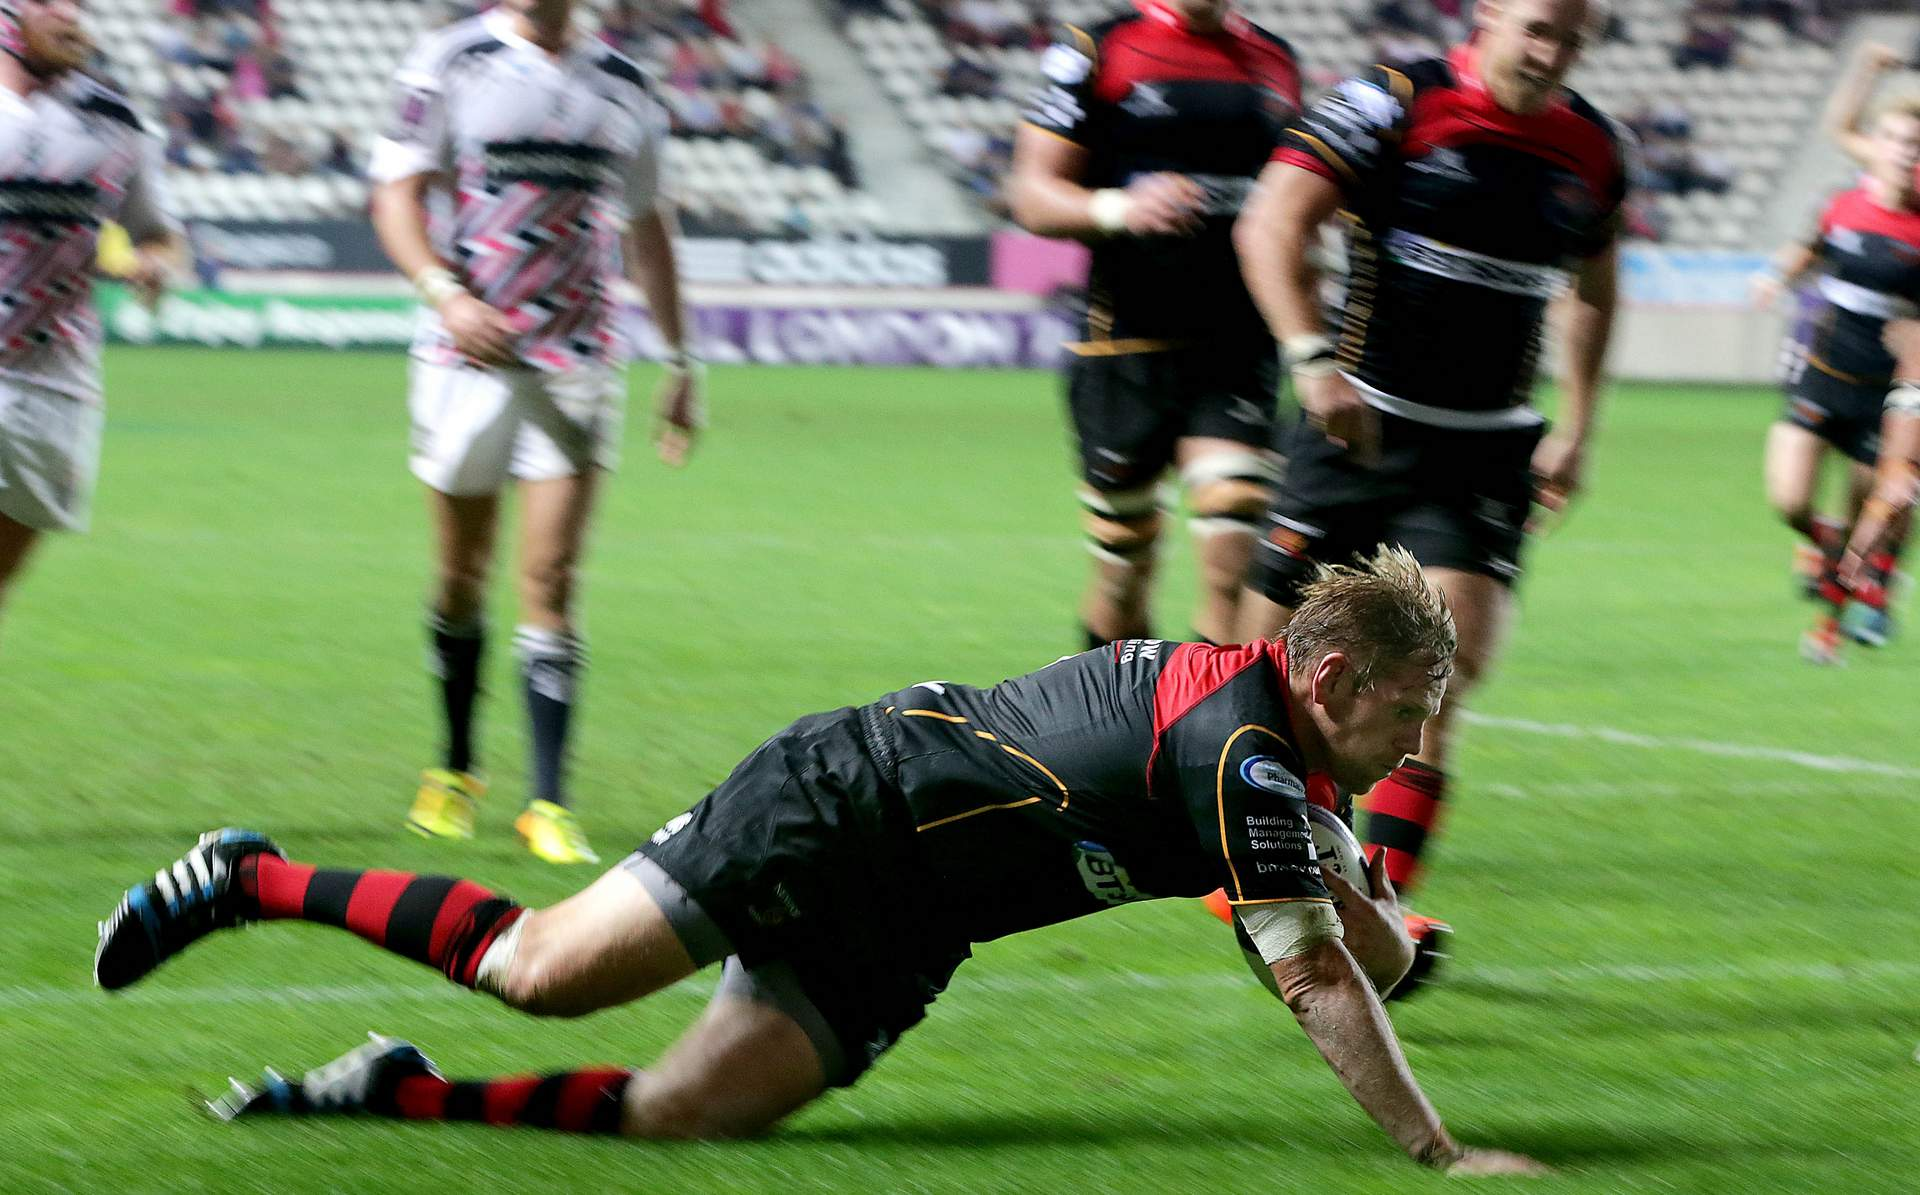 REPORT: Dragons clinch historic triumph in Paris